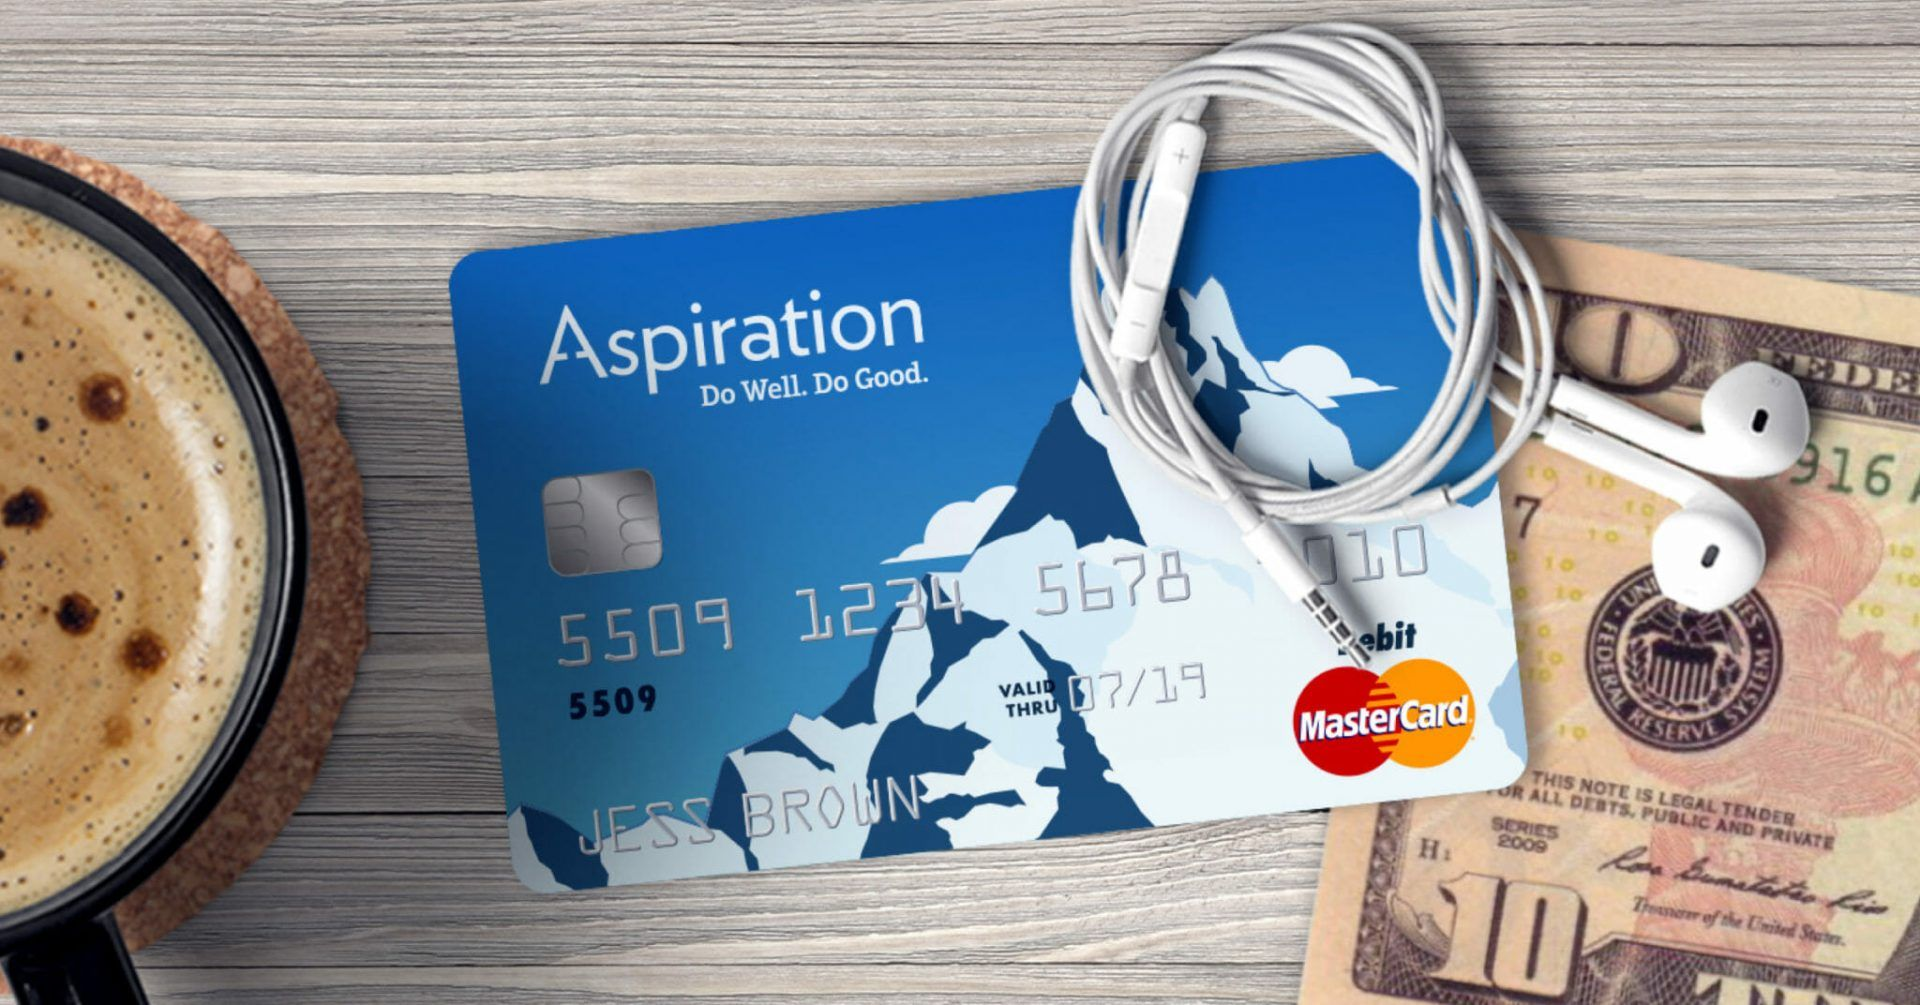 Aspiration Summit Checking Account Review Is Aspiration